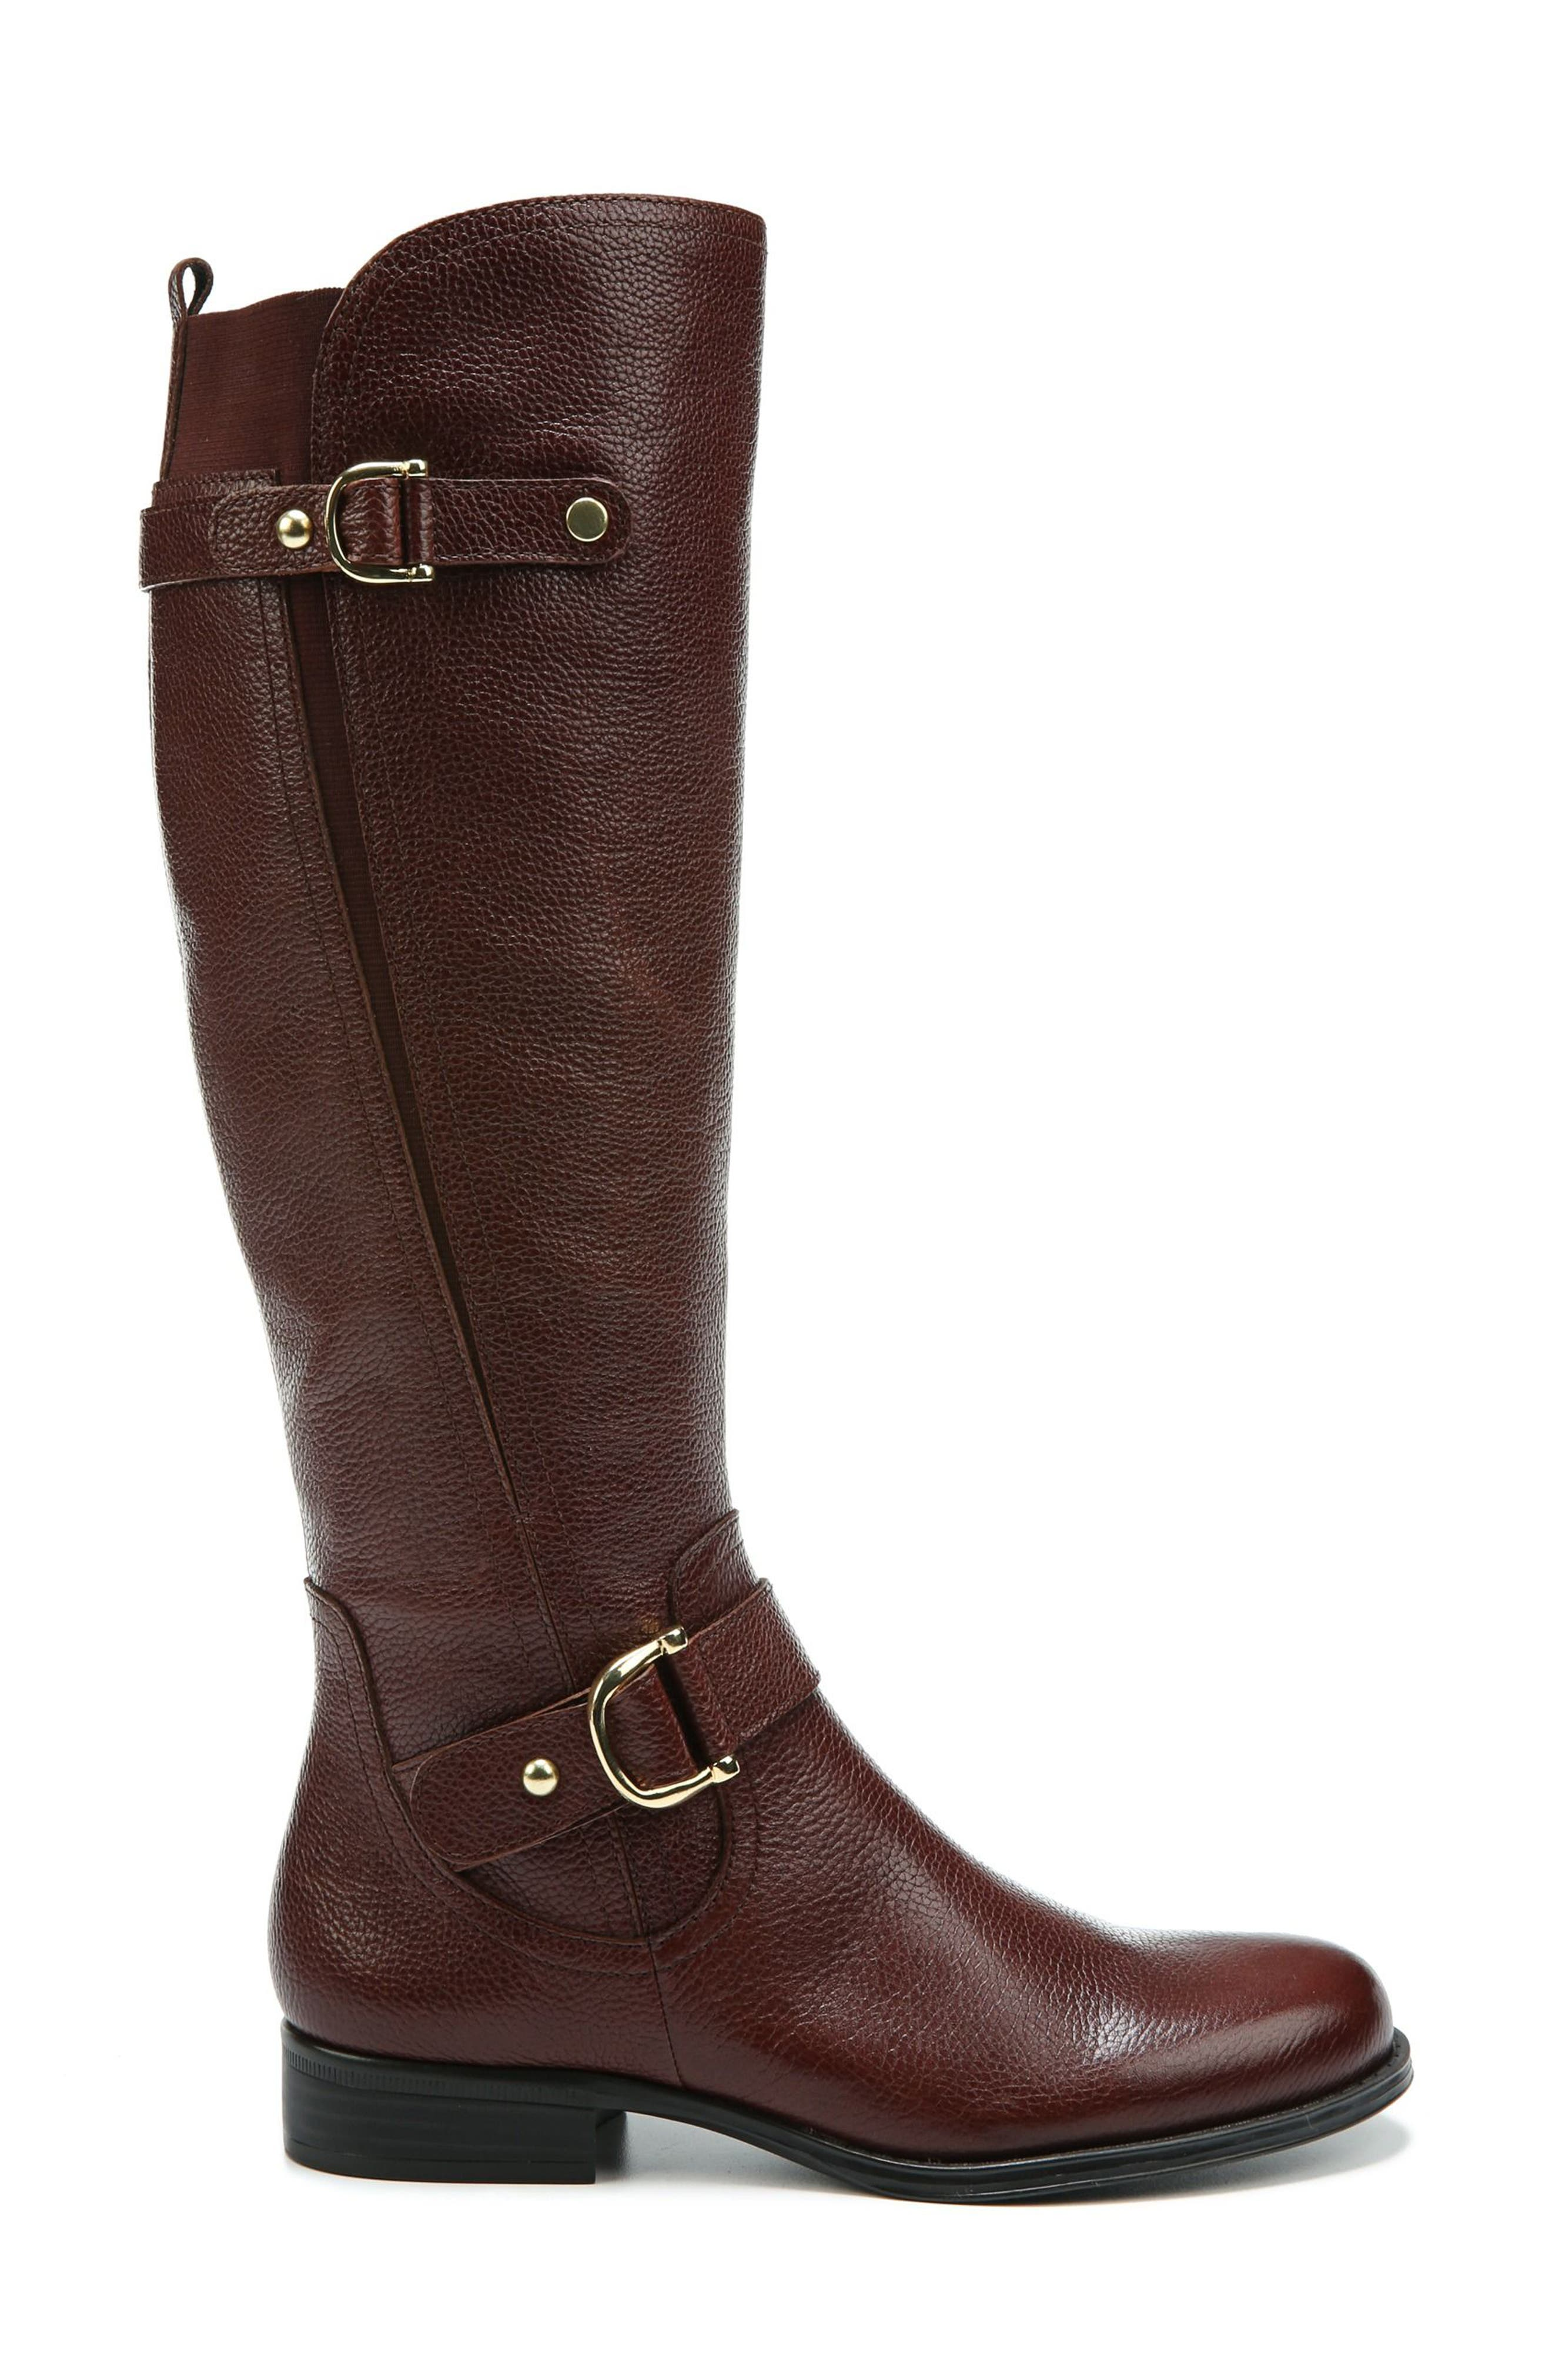 Jenelle Tall Boot,                             Alternate thumbnail 3, color,                             Brown Leather